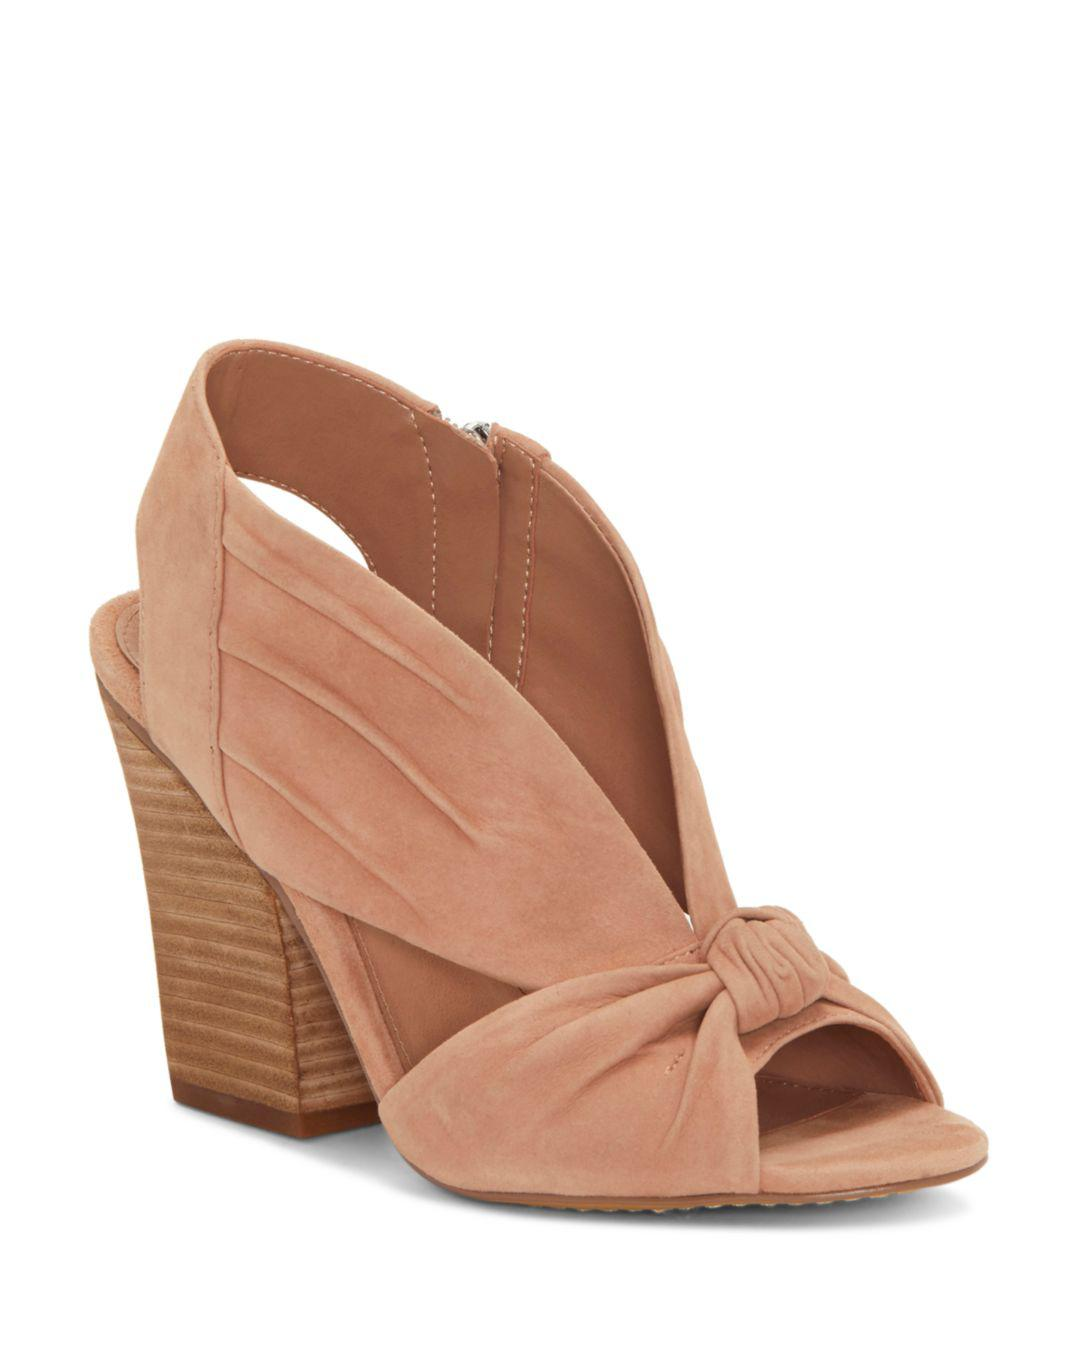 be197748b19 Lyst - Vince Camuto Women s Kerra Knotted Suede High-heel Slingback ...